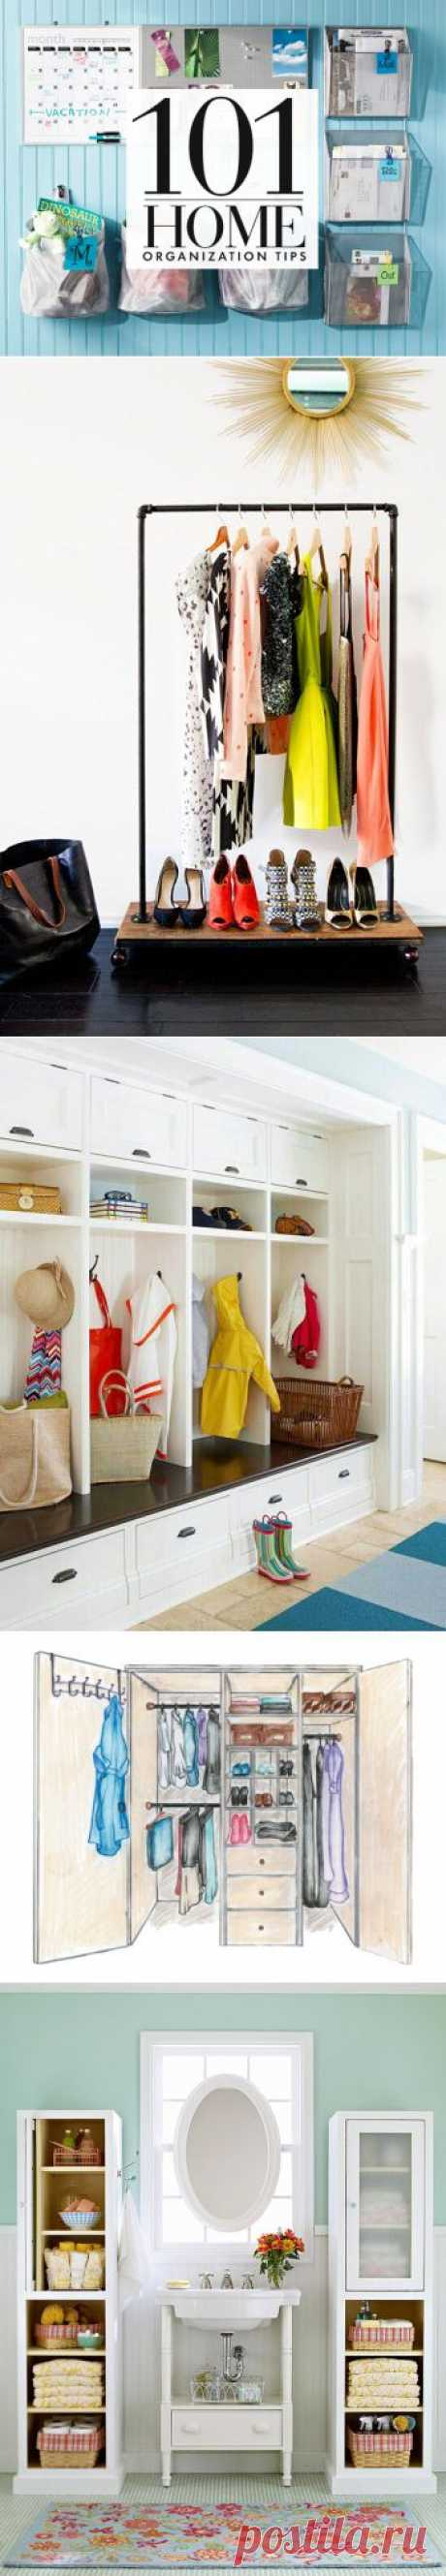 101 Home Organizing Tips and Tricks   The Vivant